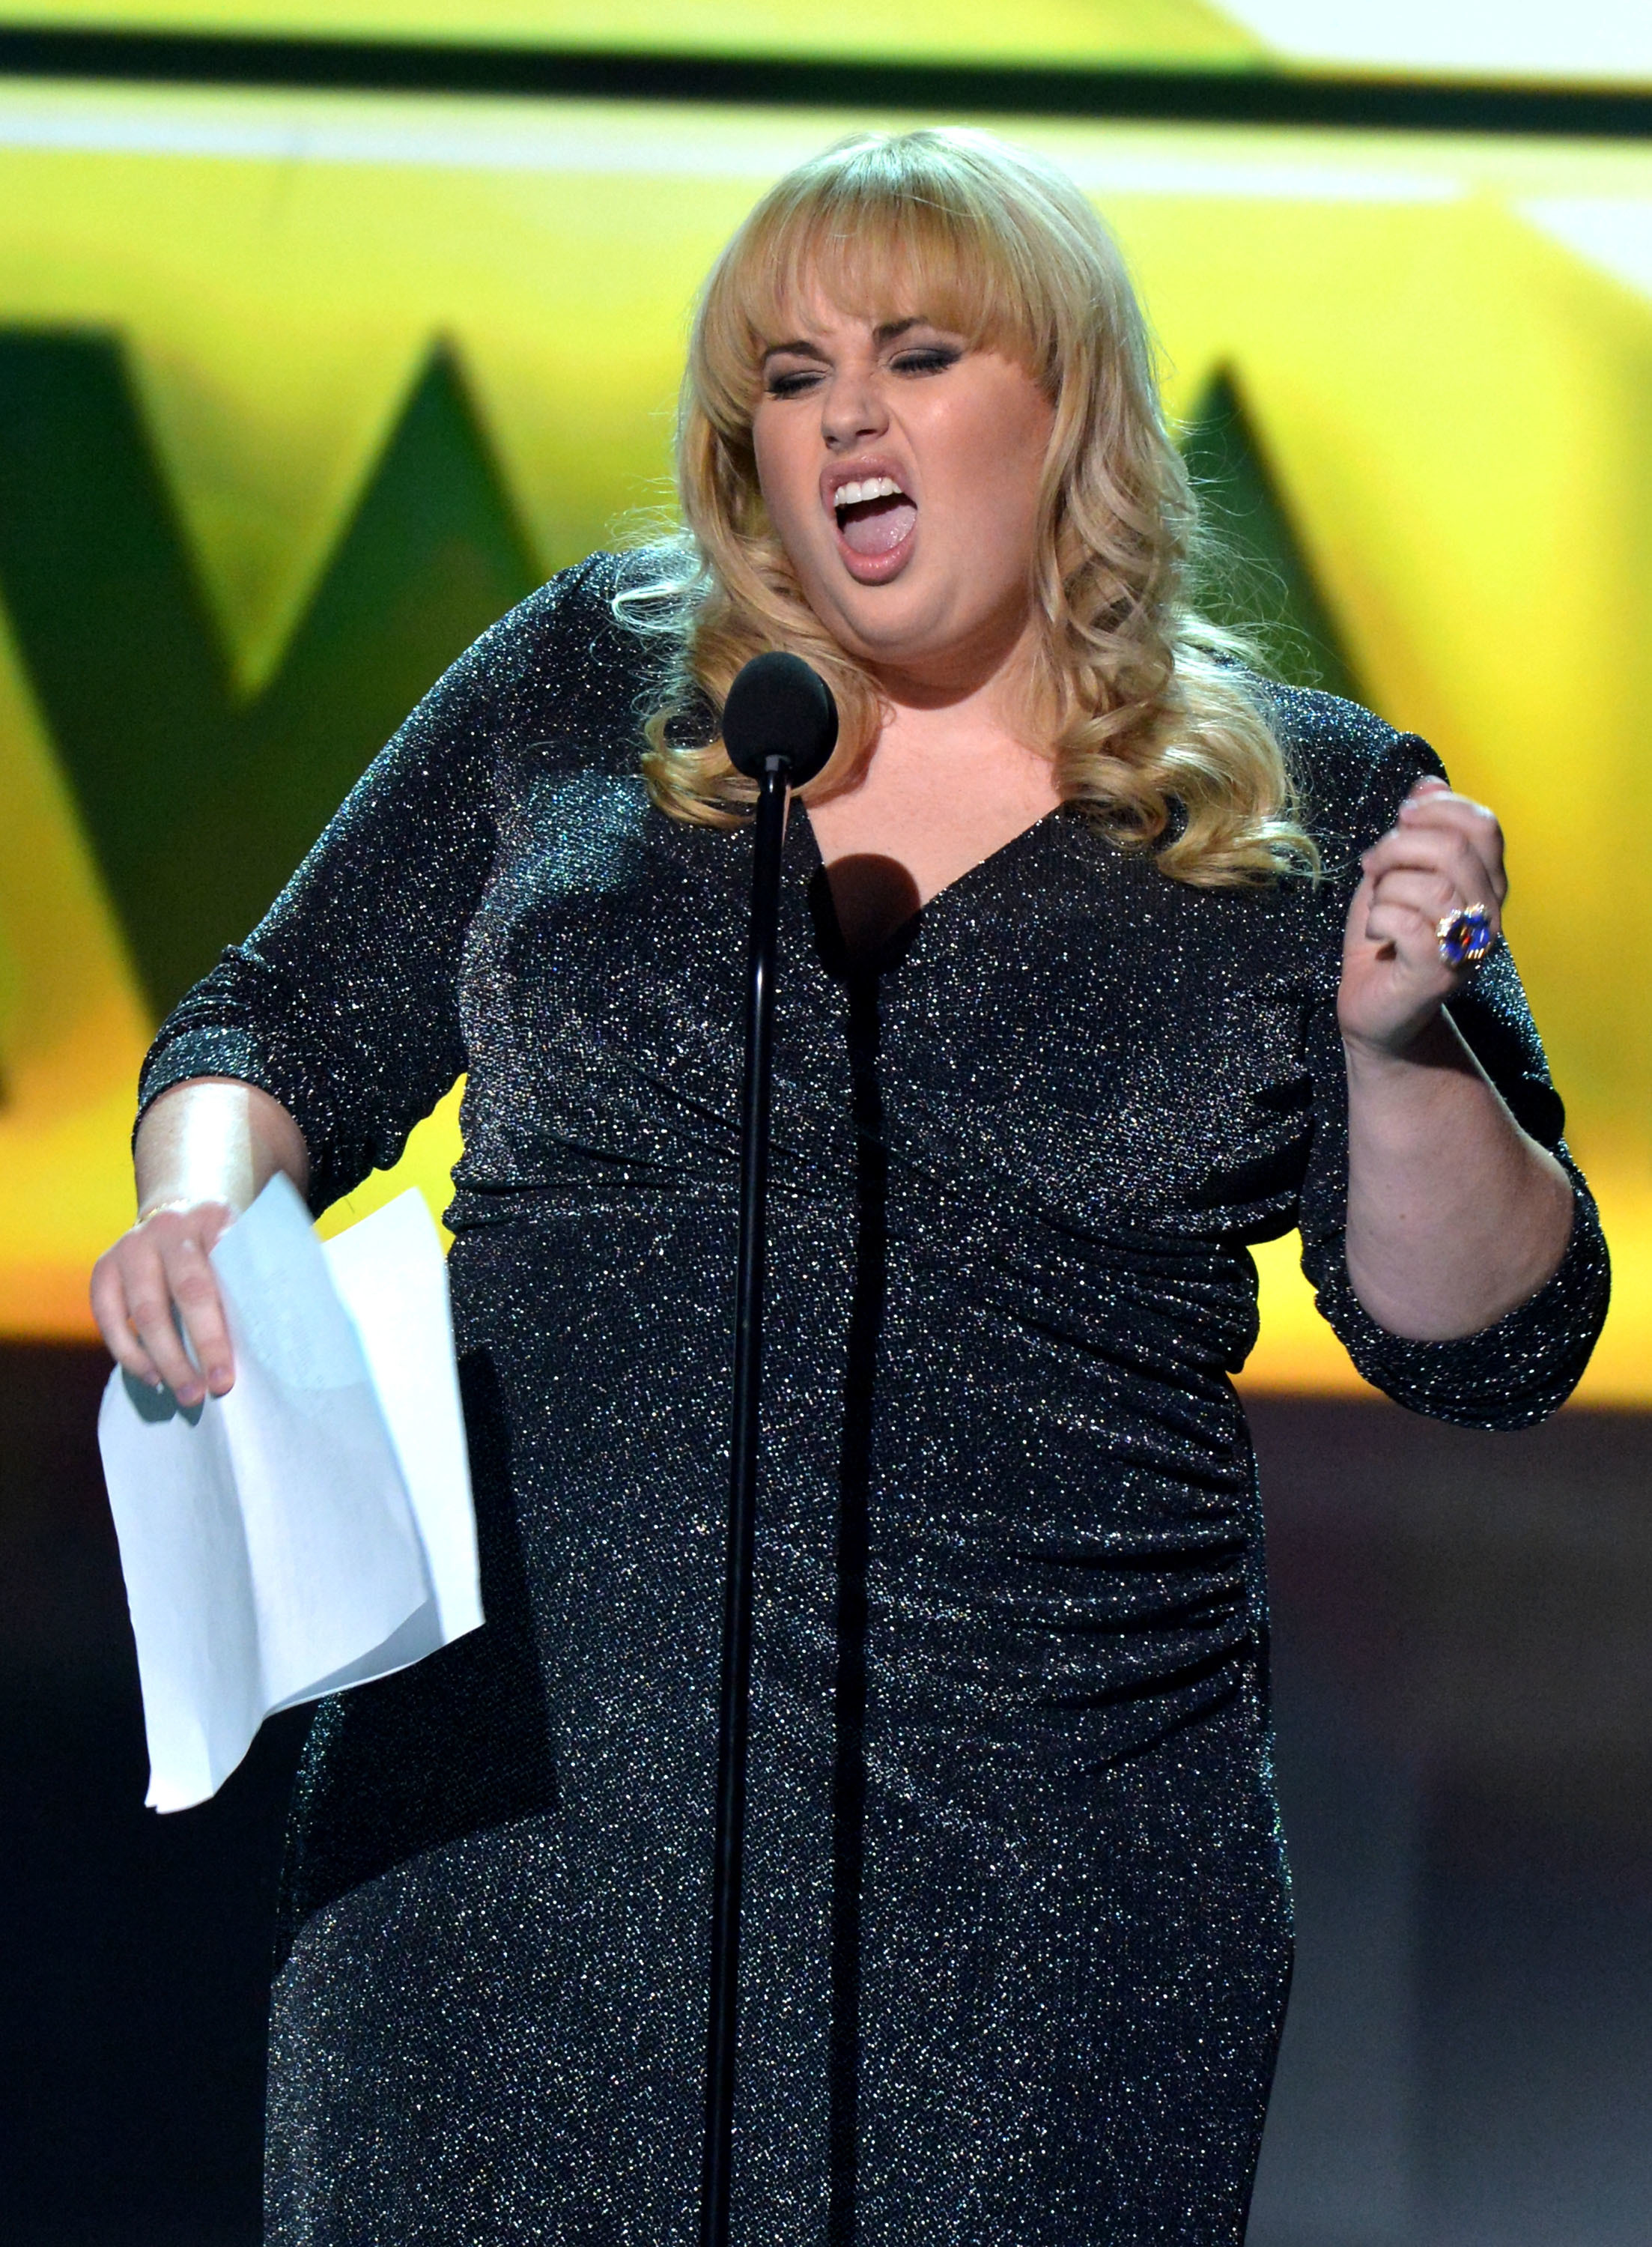 Rebel Wilson interesting facts